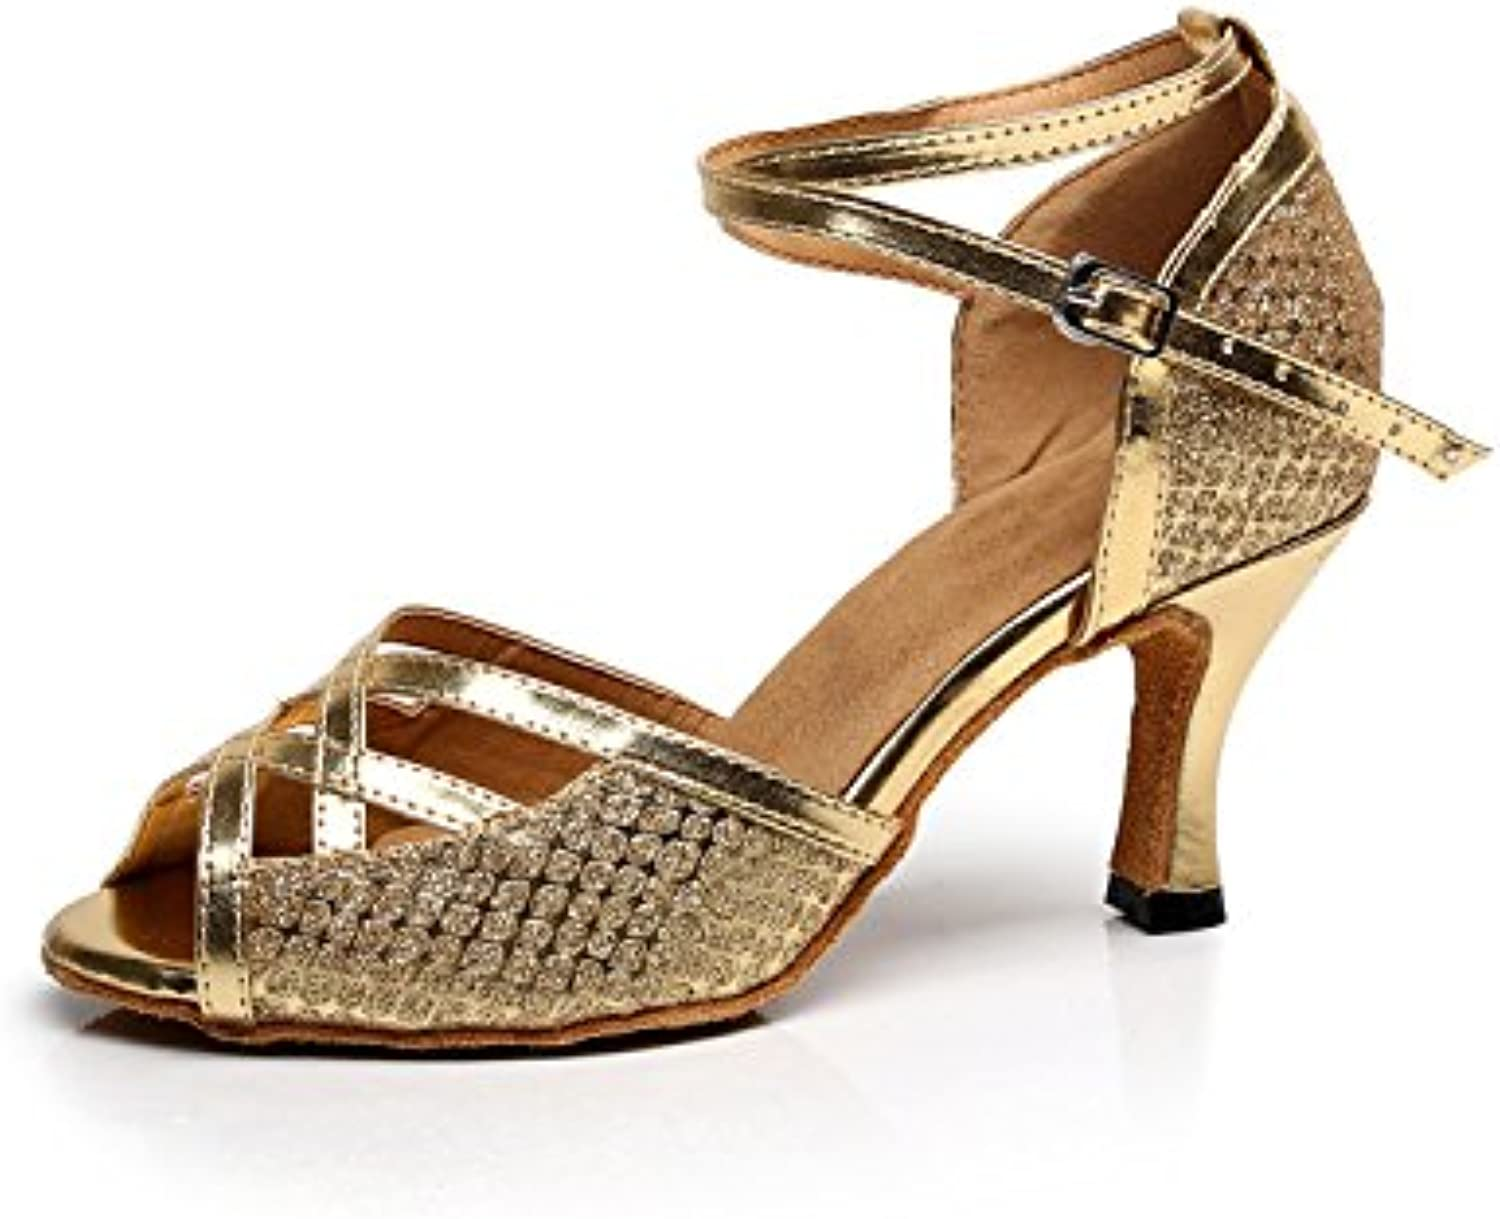 38121dcb112fc MINITOO TQJ5010 Ladies Ankle Strap Gold Glitter Glitter Glitter Tango Latin  Ballroom Dance Shoes Evening Wedding Sandals 4.5 UK Parent B01M8NKLCX f7d6a9